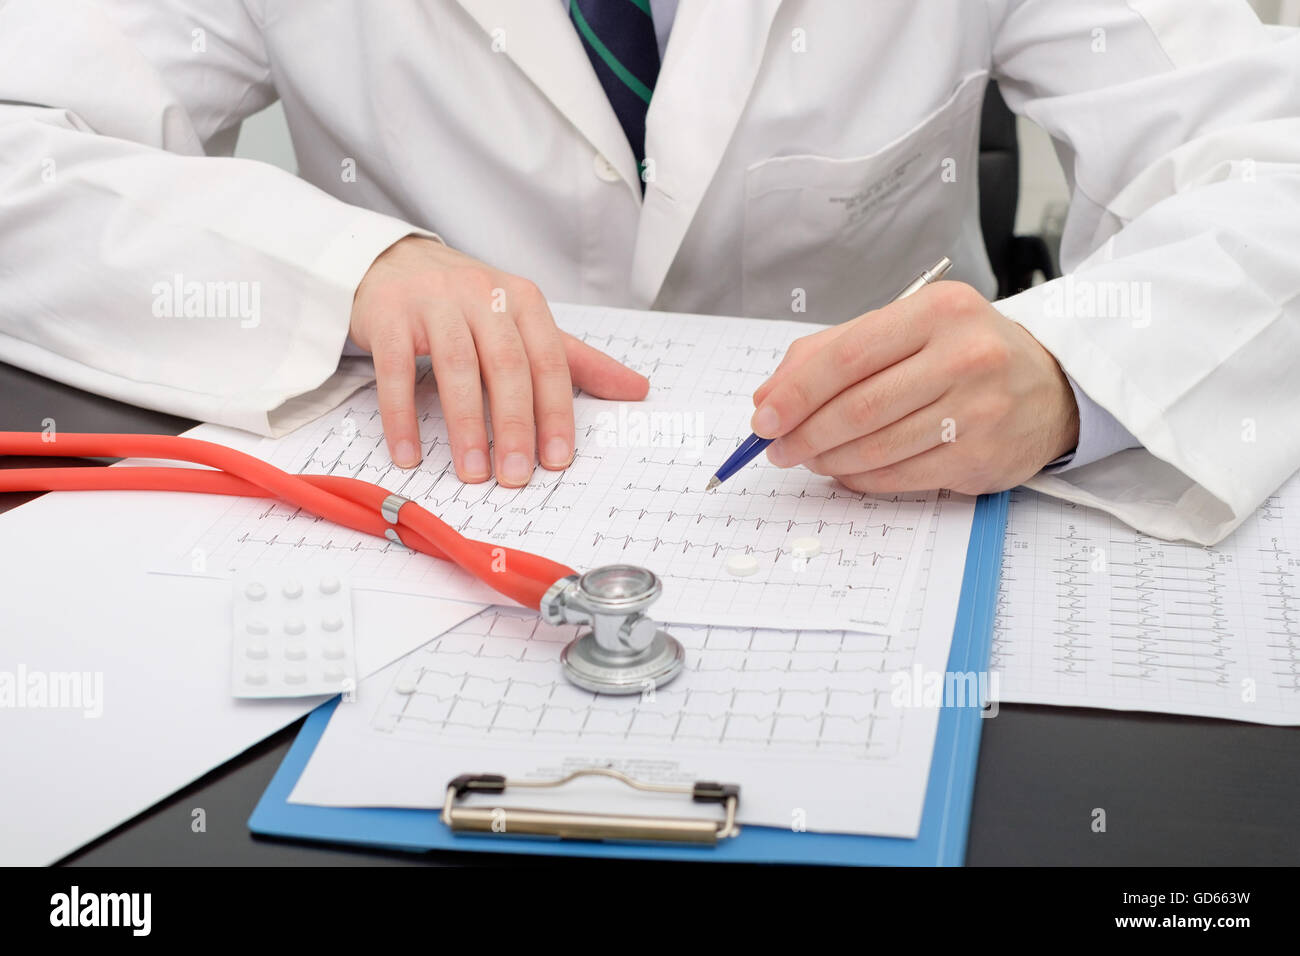 Doctor checking an Ecg paper - Stock Image